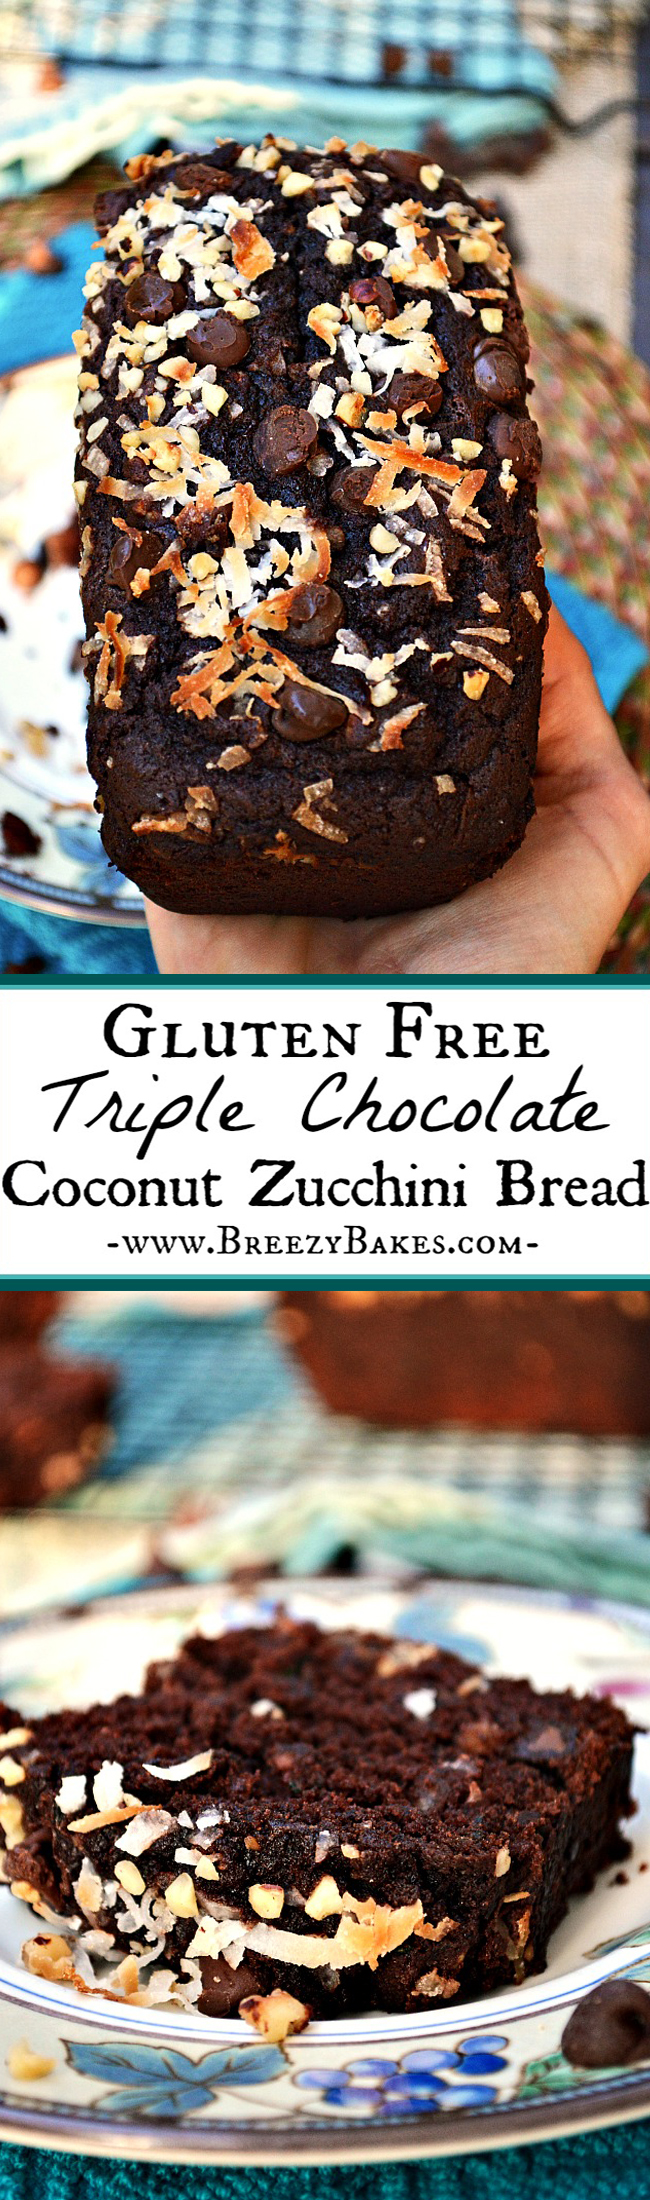 It's quite a stretch to call this dessert-like quick bread a breakfast item, but whether you eat it morning, noon, or night this Gluten Free Chocolate Coconut Zucchini Bread is fudgy, moist, decadent, and downright delicious!